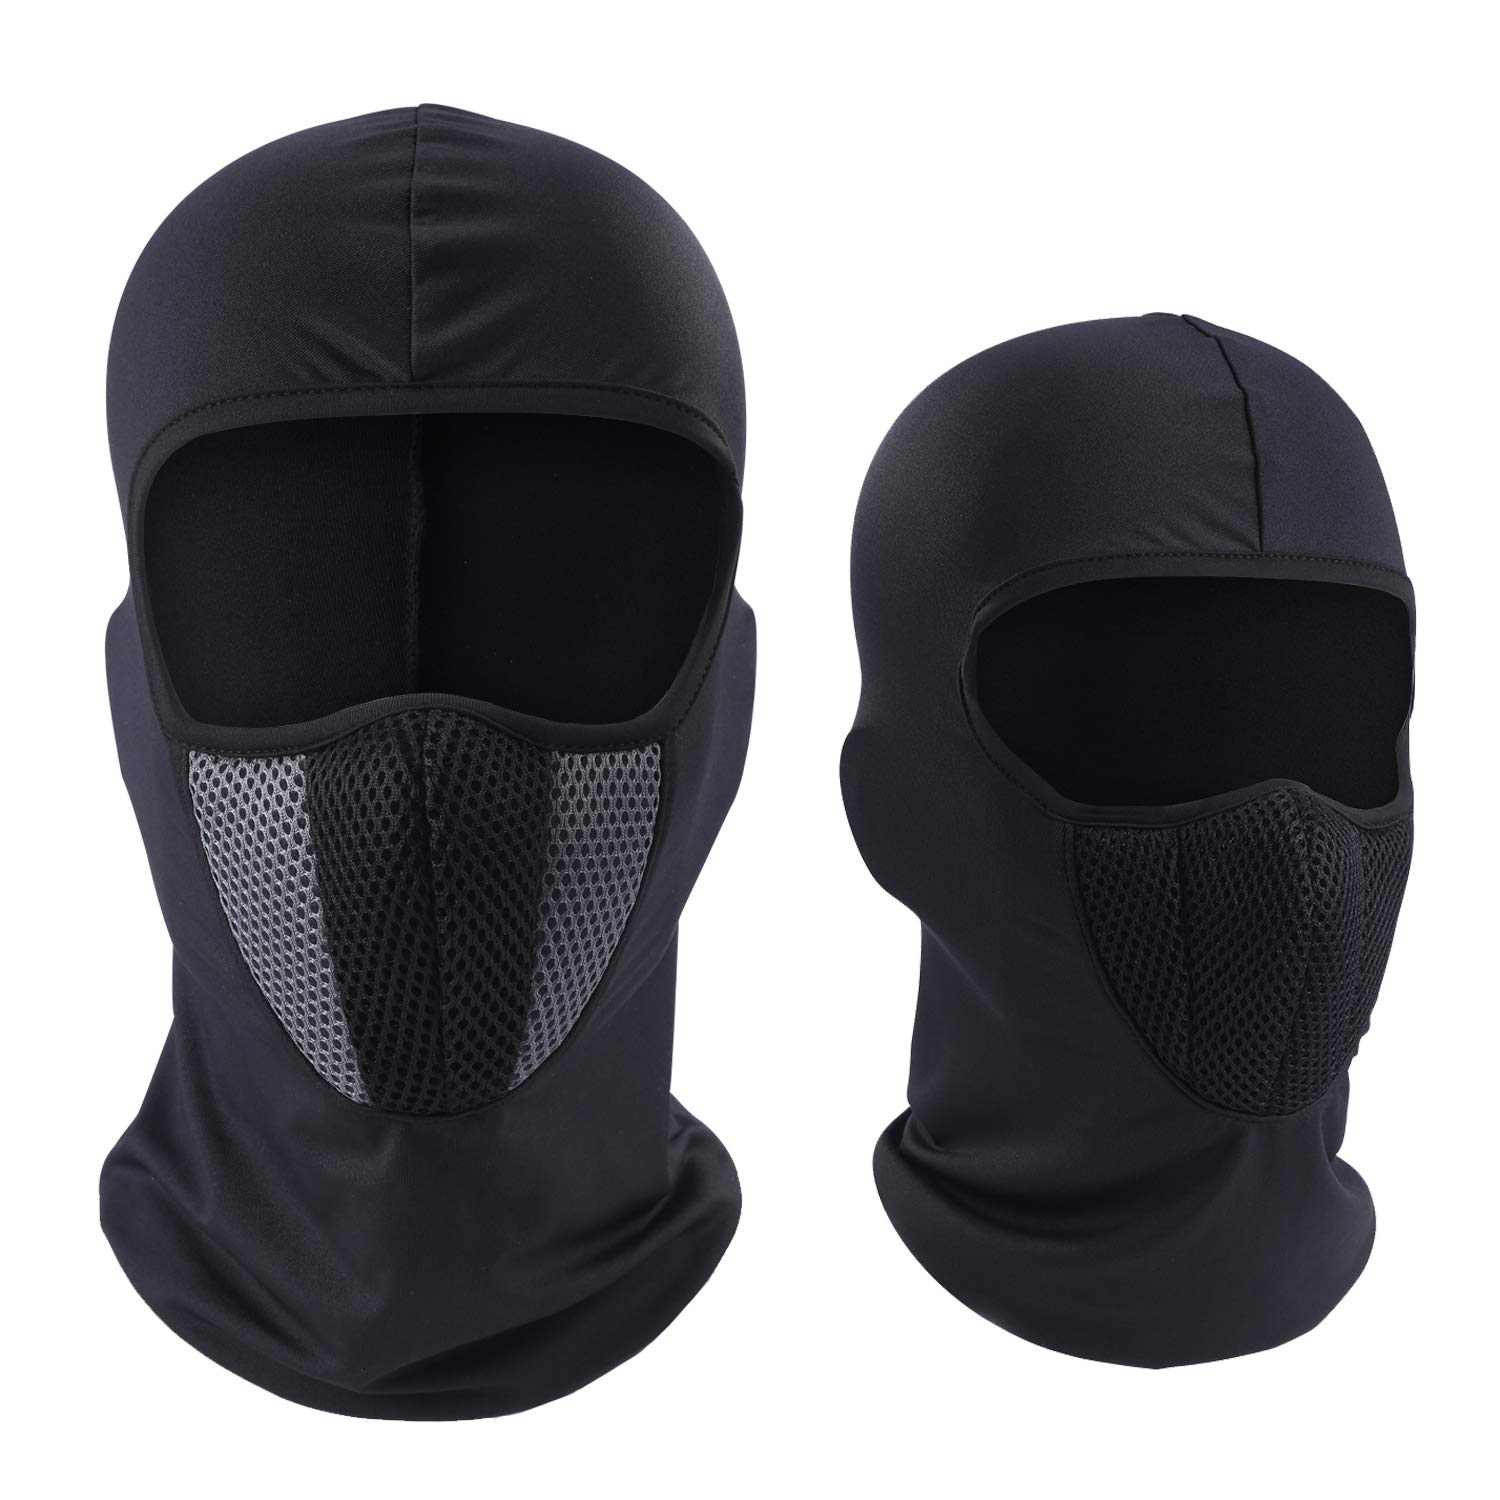 Balaclava - breathable Outdoor Multifunctional Summer Windproof Full Face Mask for Cycling, Hiking, Motorcycle